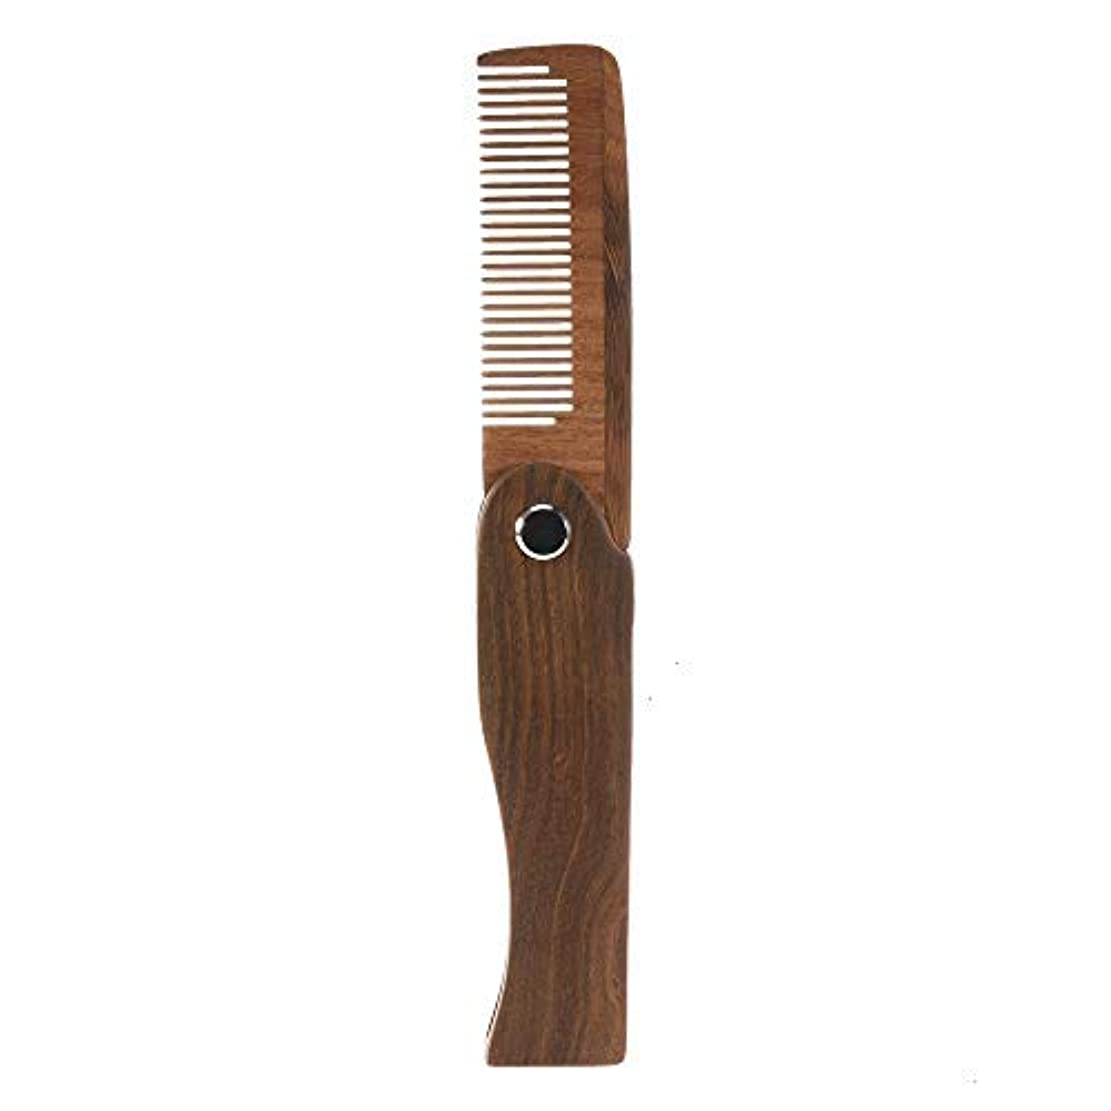 おしゃれじゃないバーガー微視的Feeko Folding Wooden Comb, 1 PC Pocket Size Hair Beard Fold Wooden Comb Durable Anti-Static Sandalwood Comb Every Day Grooming [並行輸入品]